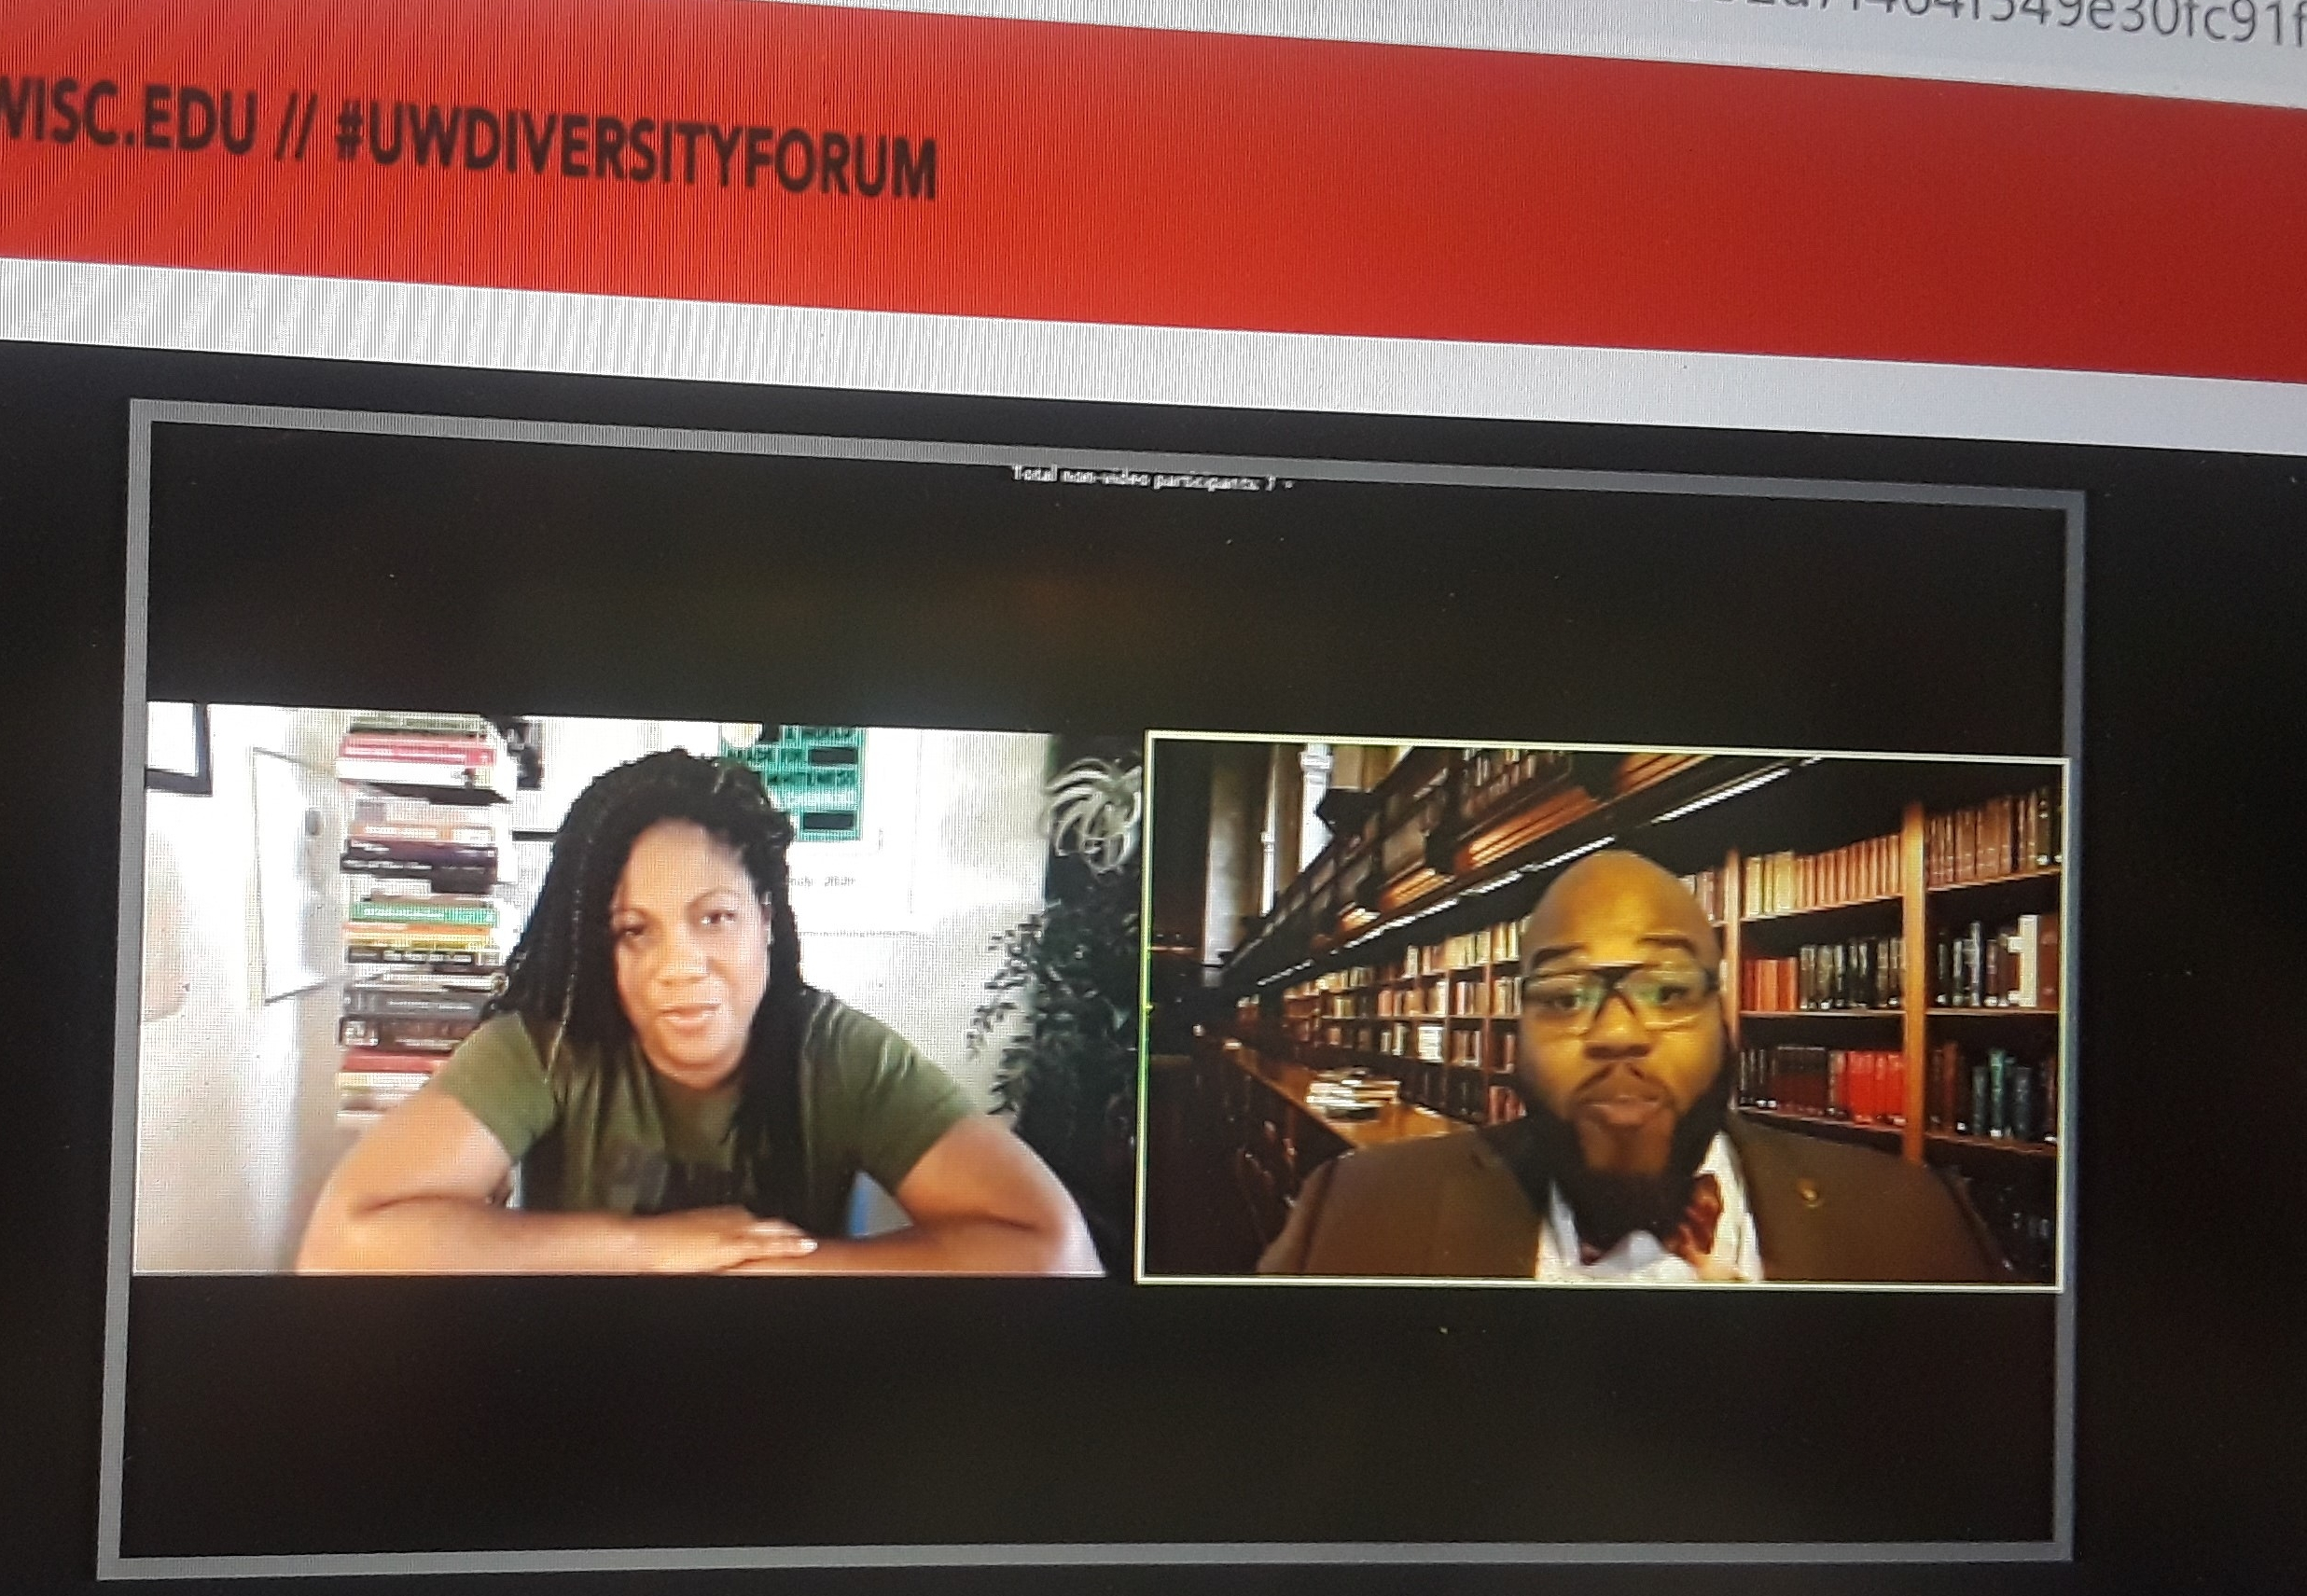 Author Austin Channing Brown discussing her collection of books with UW's LaVar J Charleston